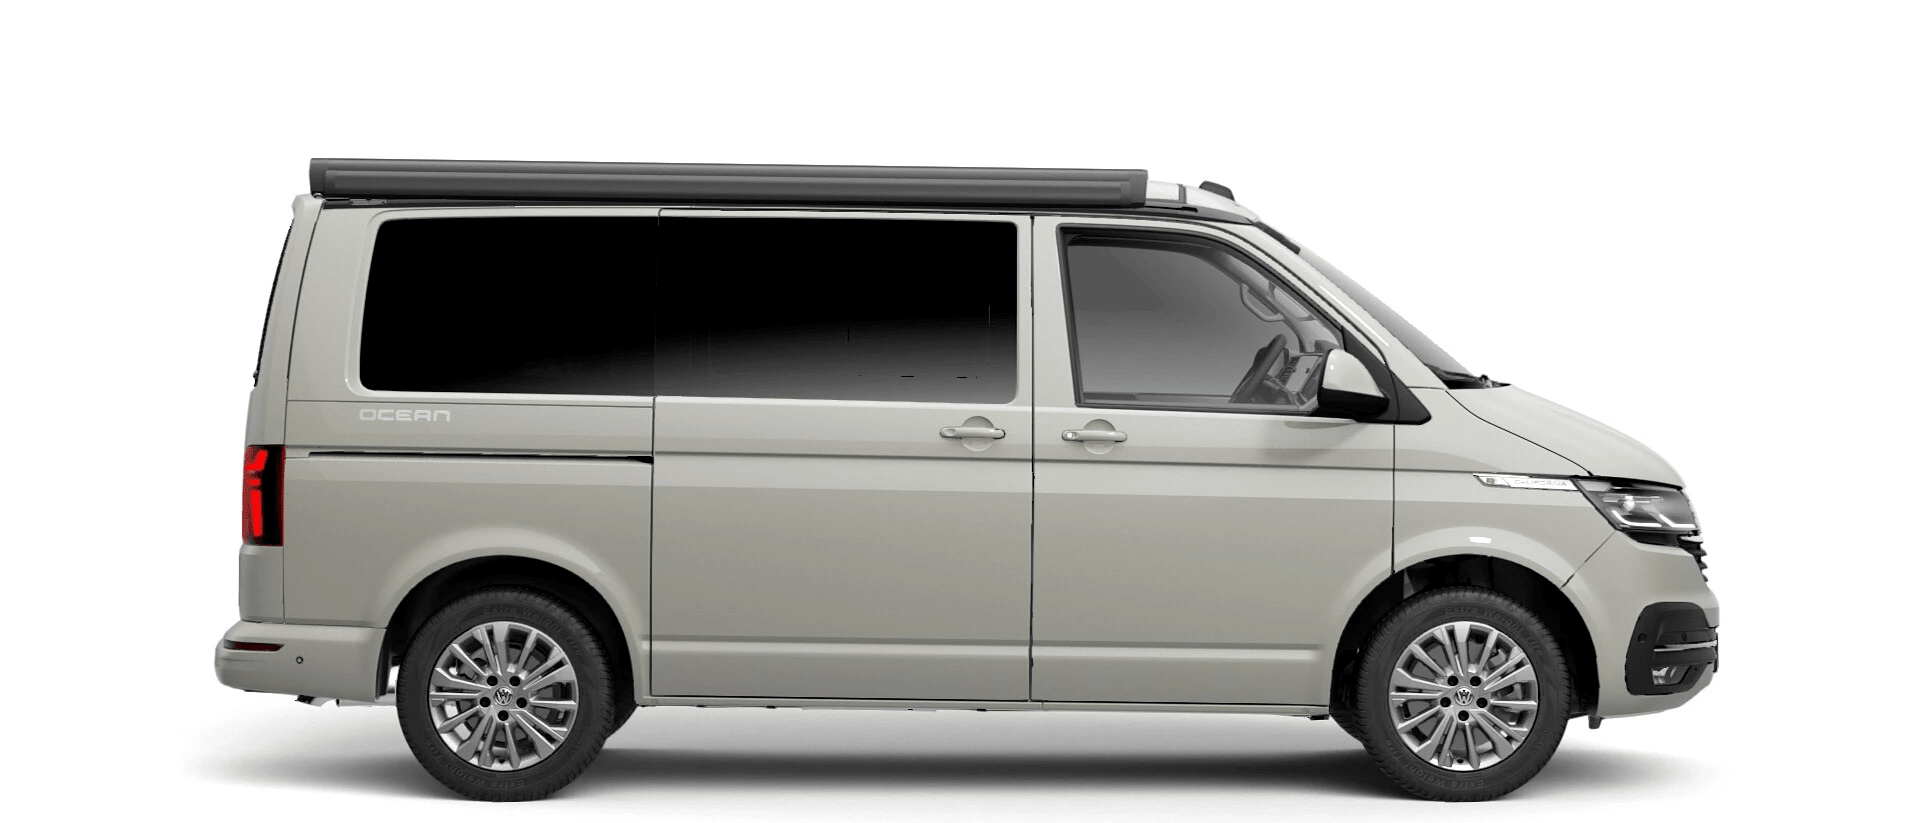 Volkswagen Van Range California - Available In Ascot Grey